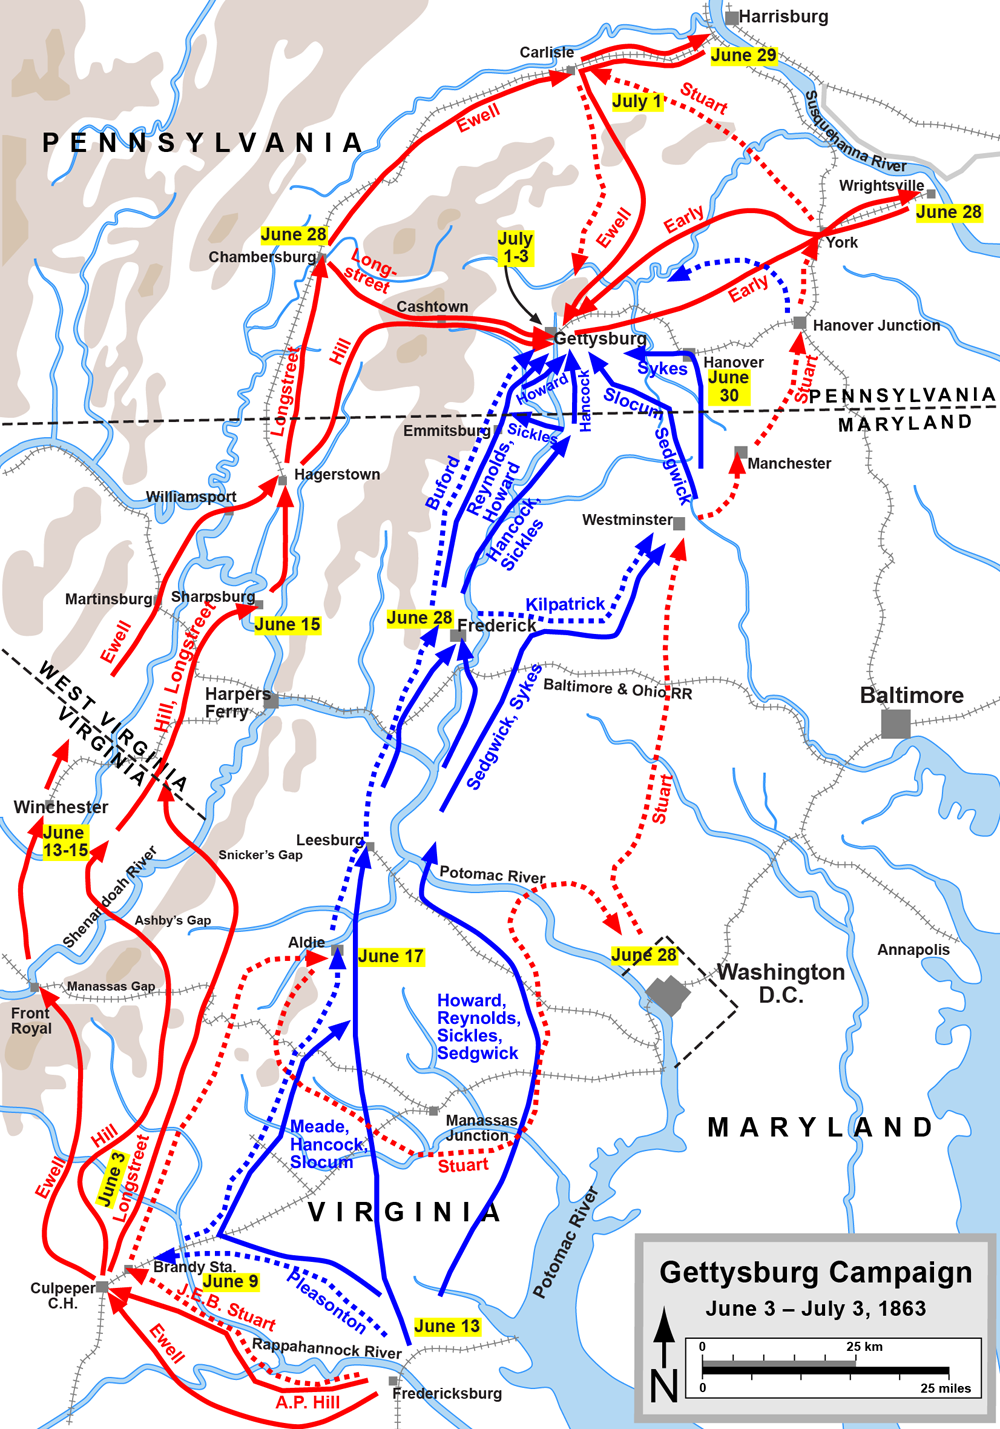 after the battle of chancellorsville in may 1863 general lee s army of northern virginia started moving northward they crossed over to the west side of